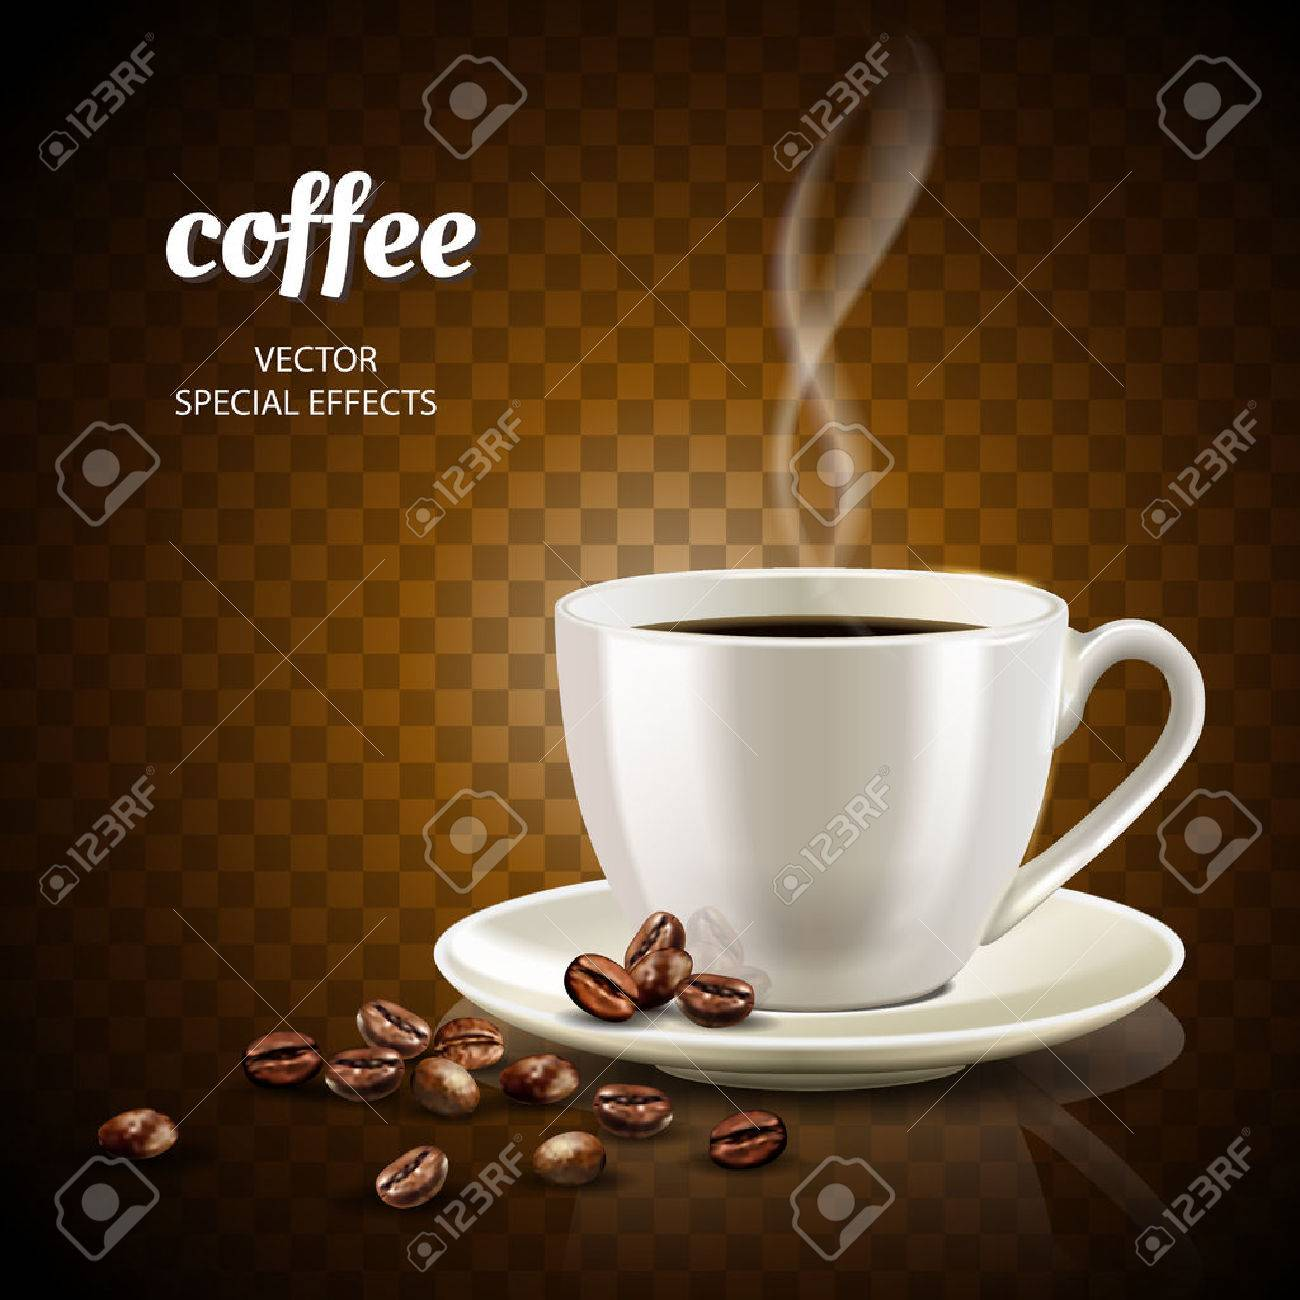 Coffee concept illustration with filled coffee cup and few coffee beans, 3d illustration - 82758354